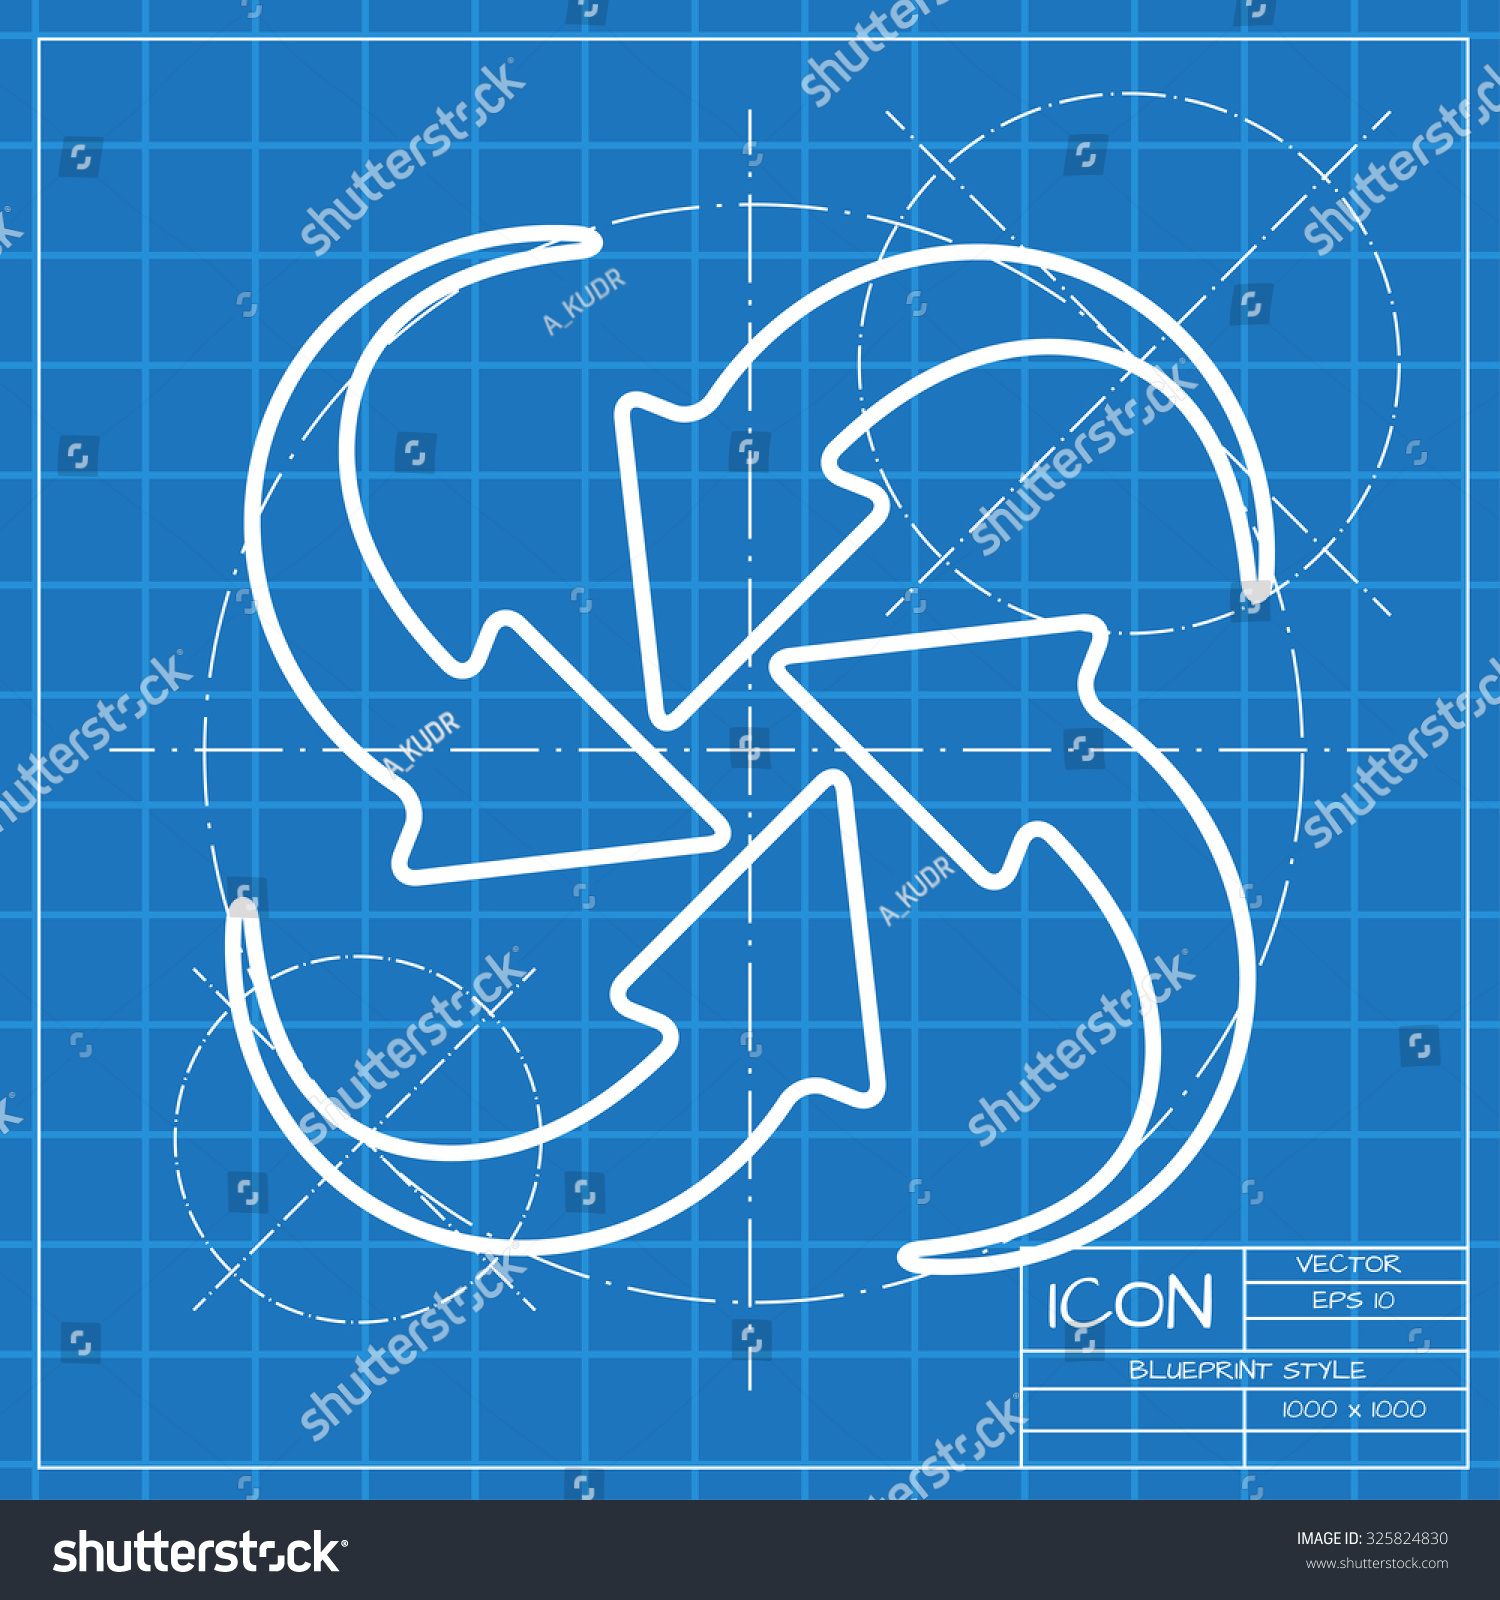 Vector classic blueprint circle round arrows stock vector vector classic blueprint of circle round arrows for business diagram on engineer and architect background malvernweather Image collections